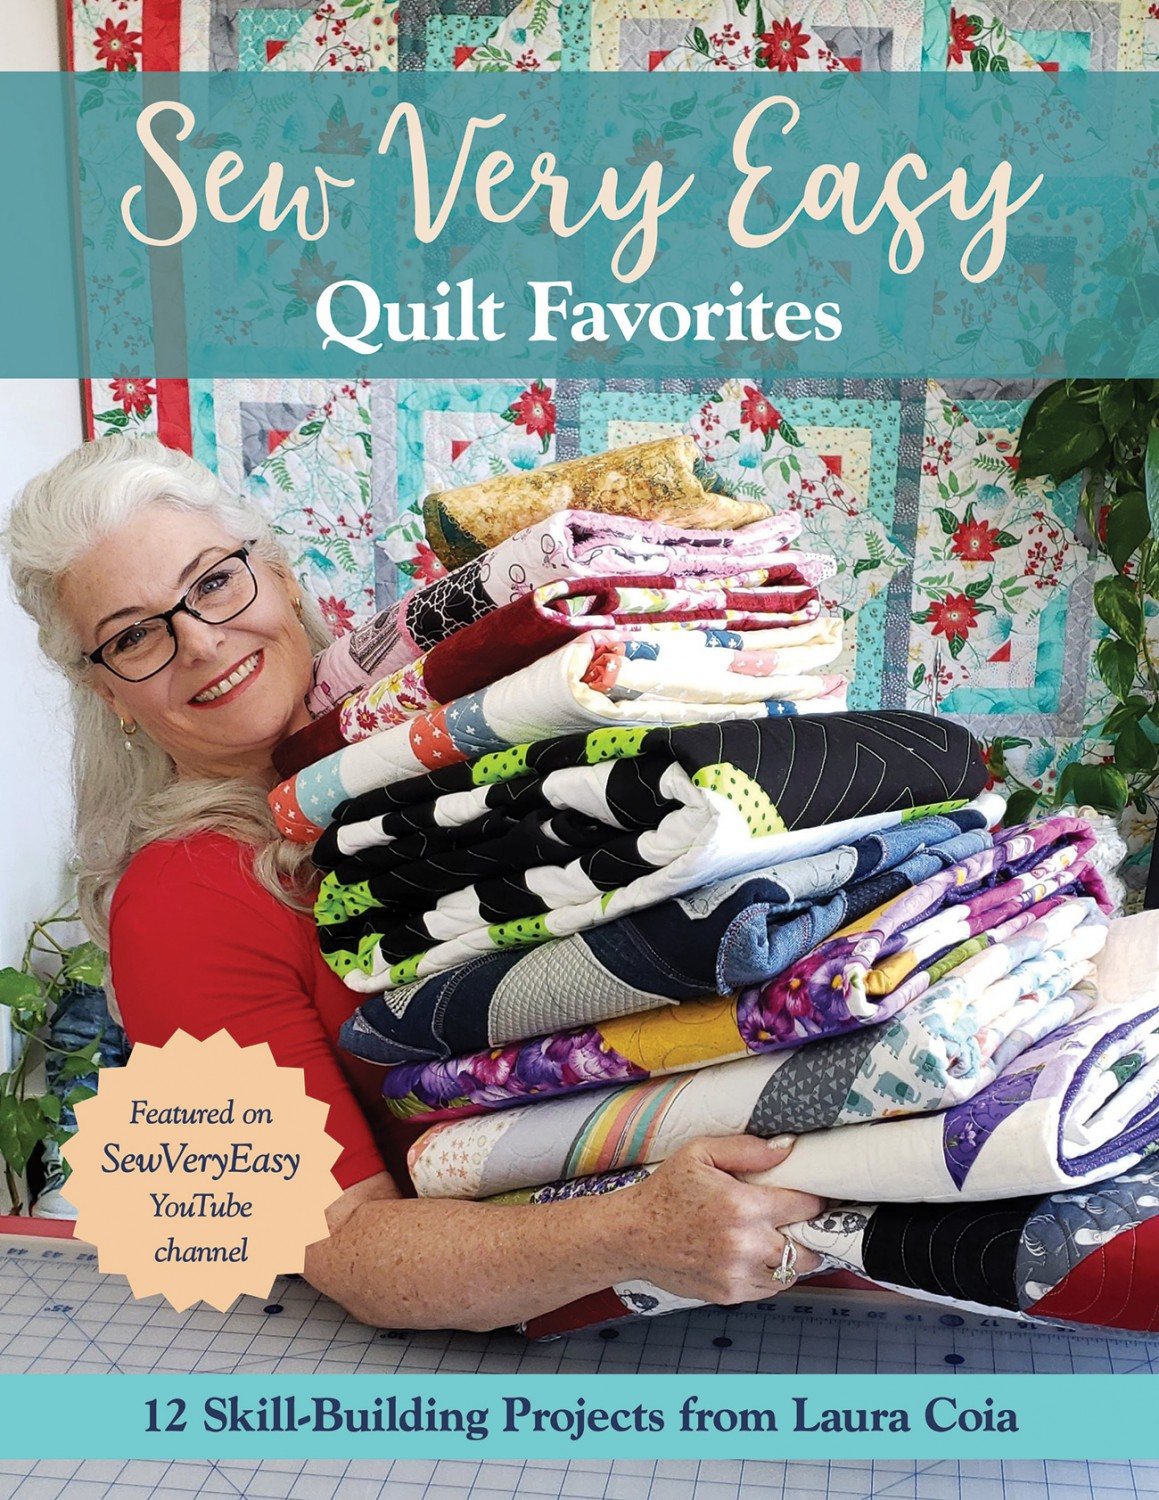 Sew Very Easy Quilt Favorites